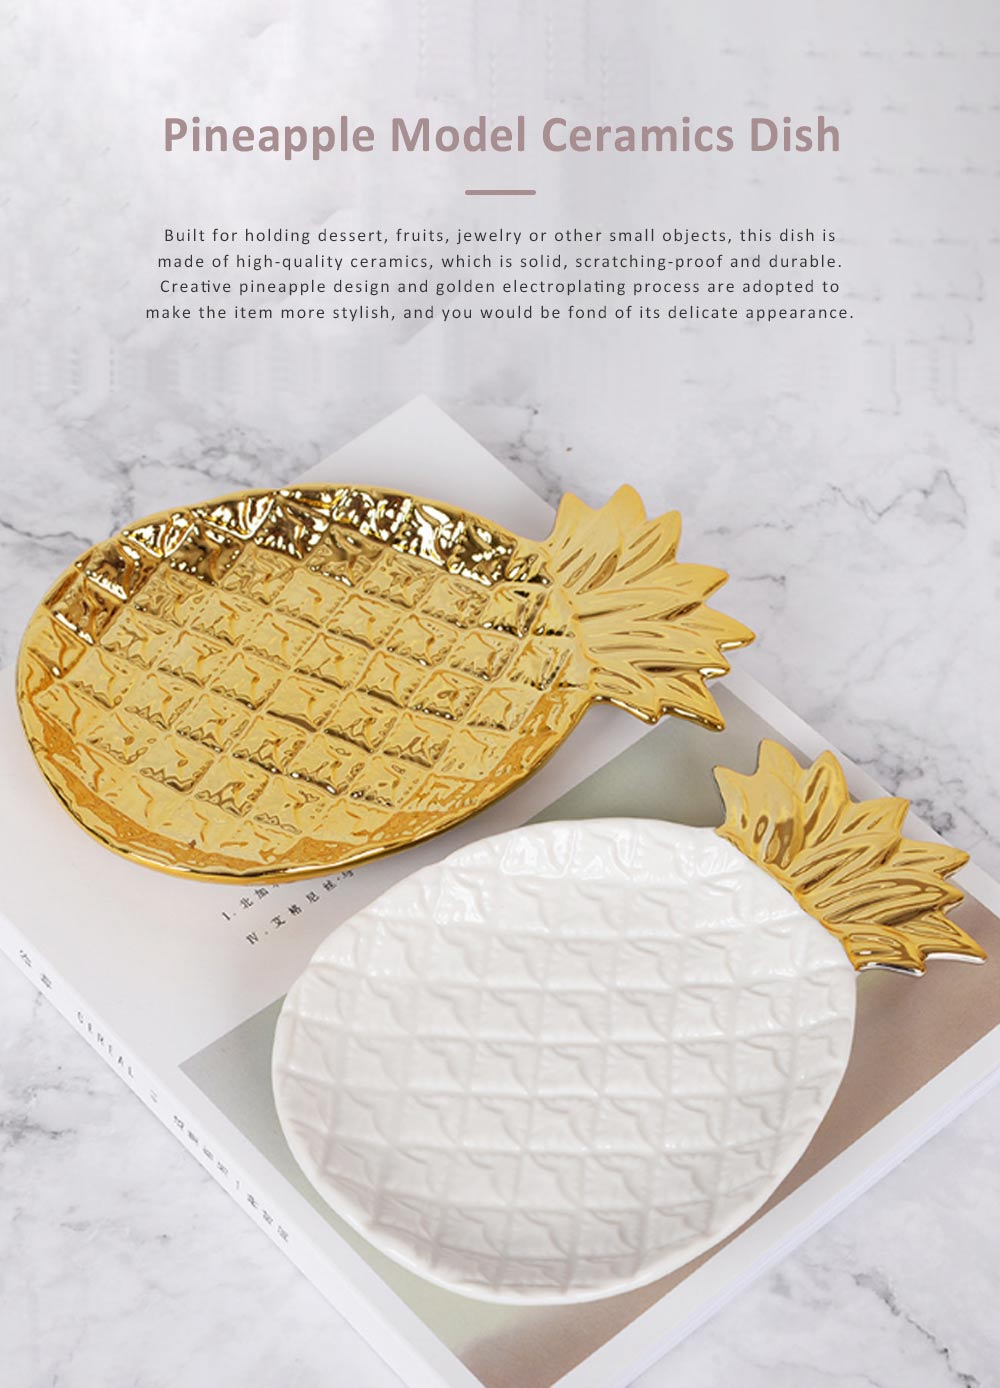 Golden Pineapple Model Ceramics Dish with Creative Shiny Electroplating ,  Exquisite Jewelry Storage Dessert Fruits Tray